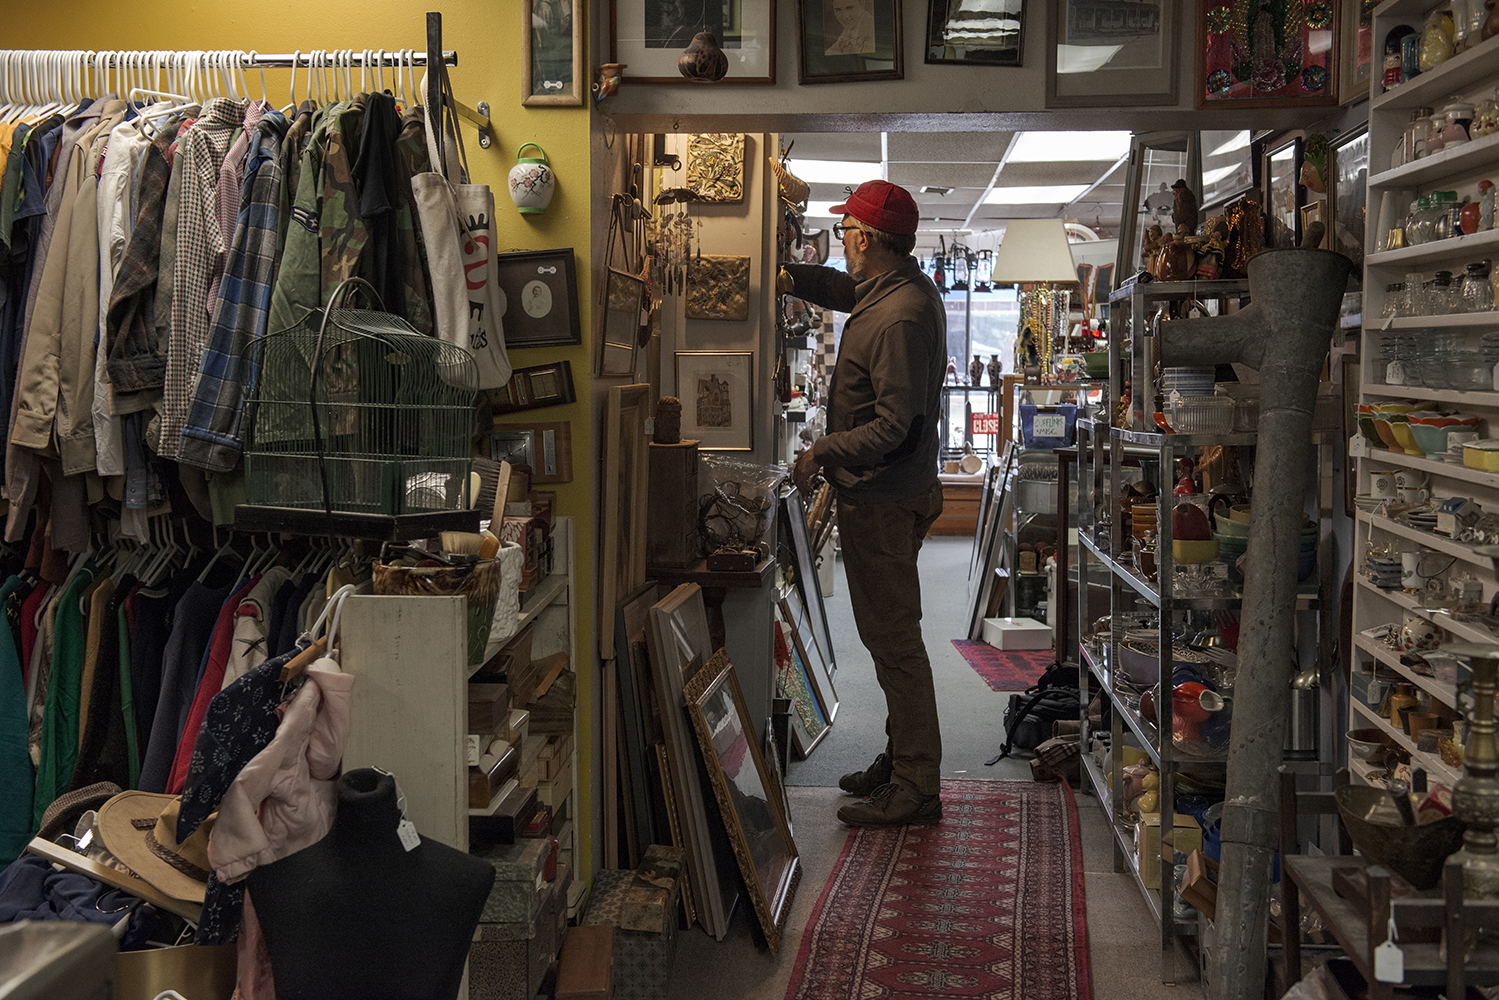 The Declining Value of Antiques